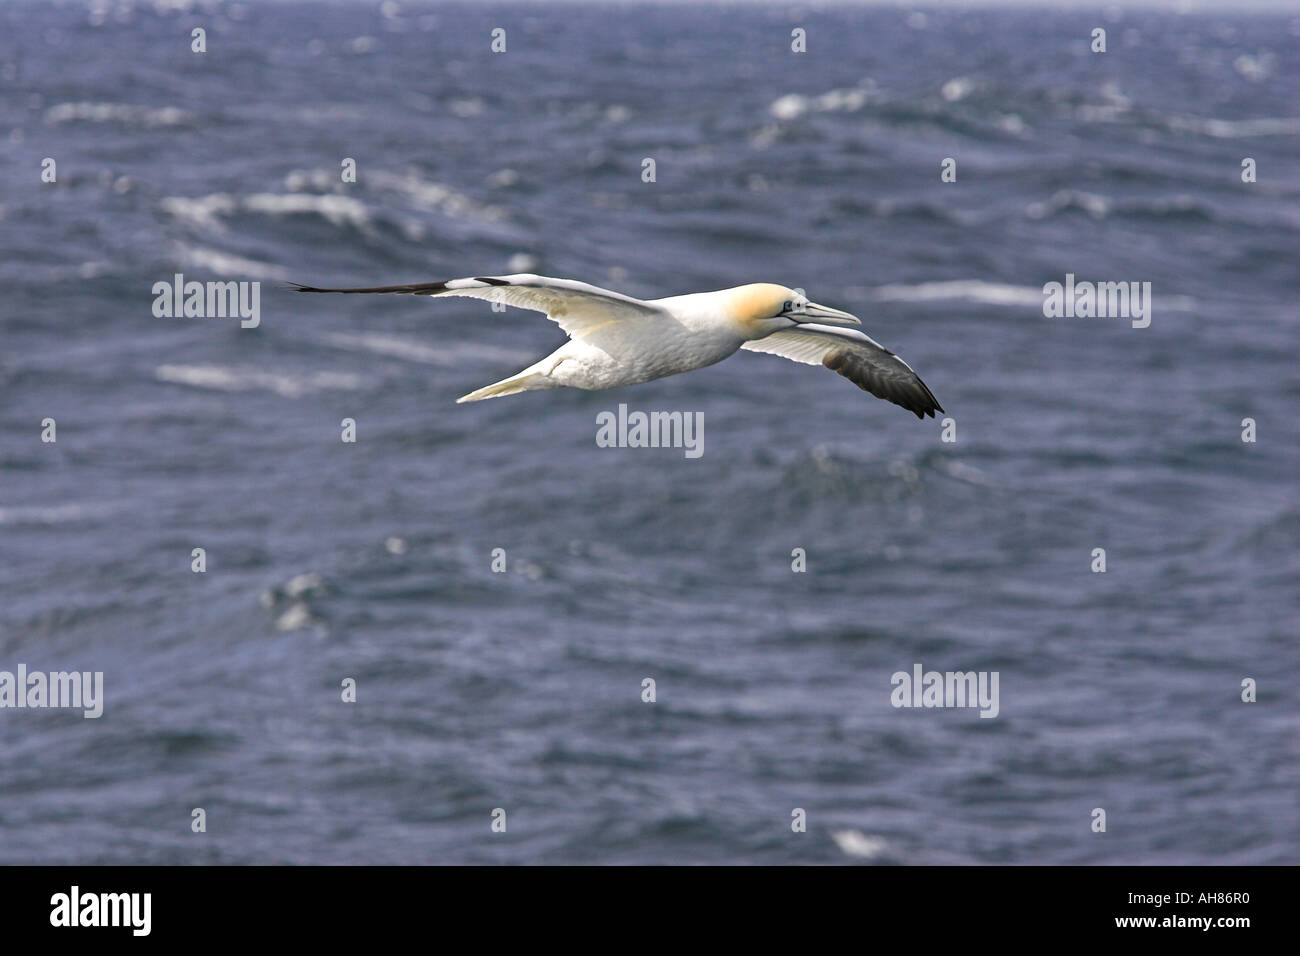 gannet flying in rough weather - Stock Image